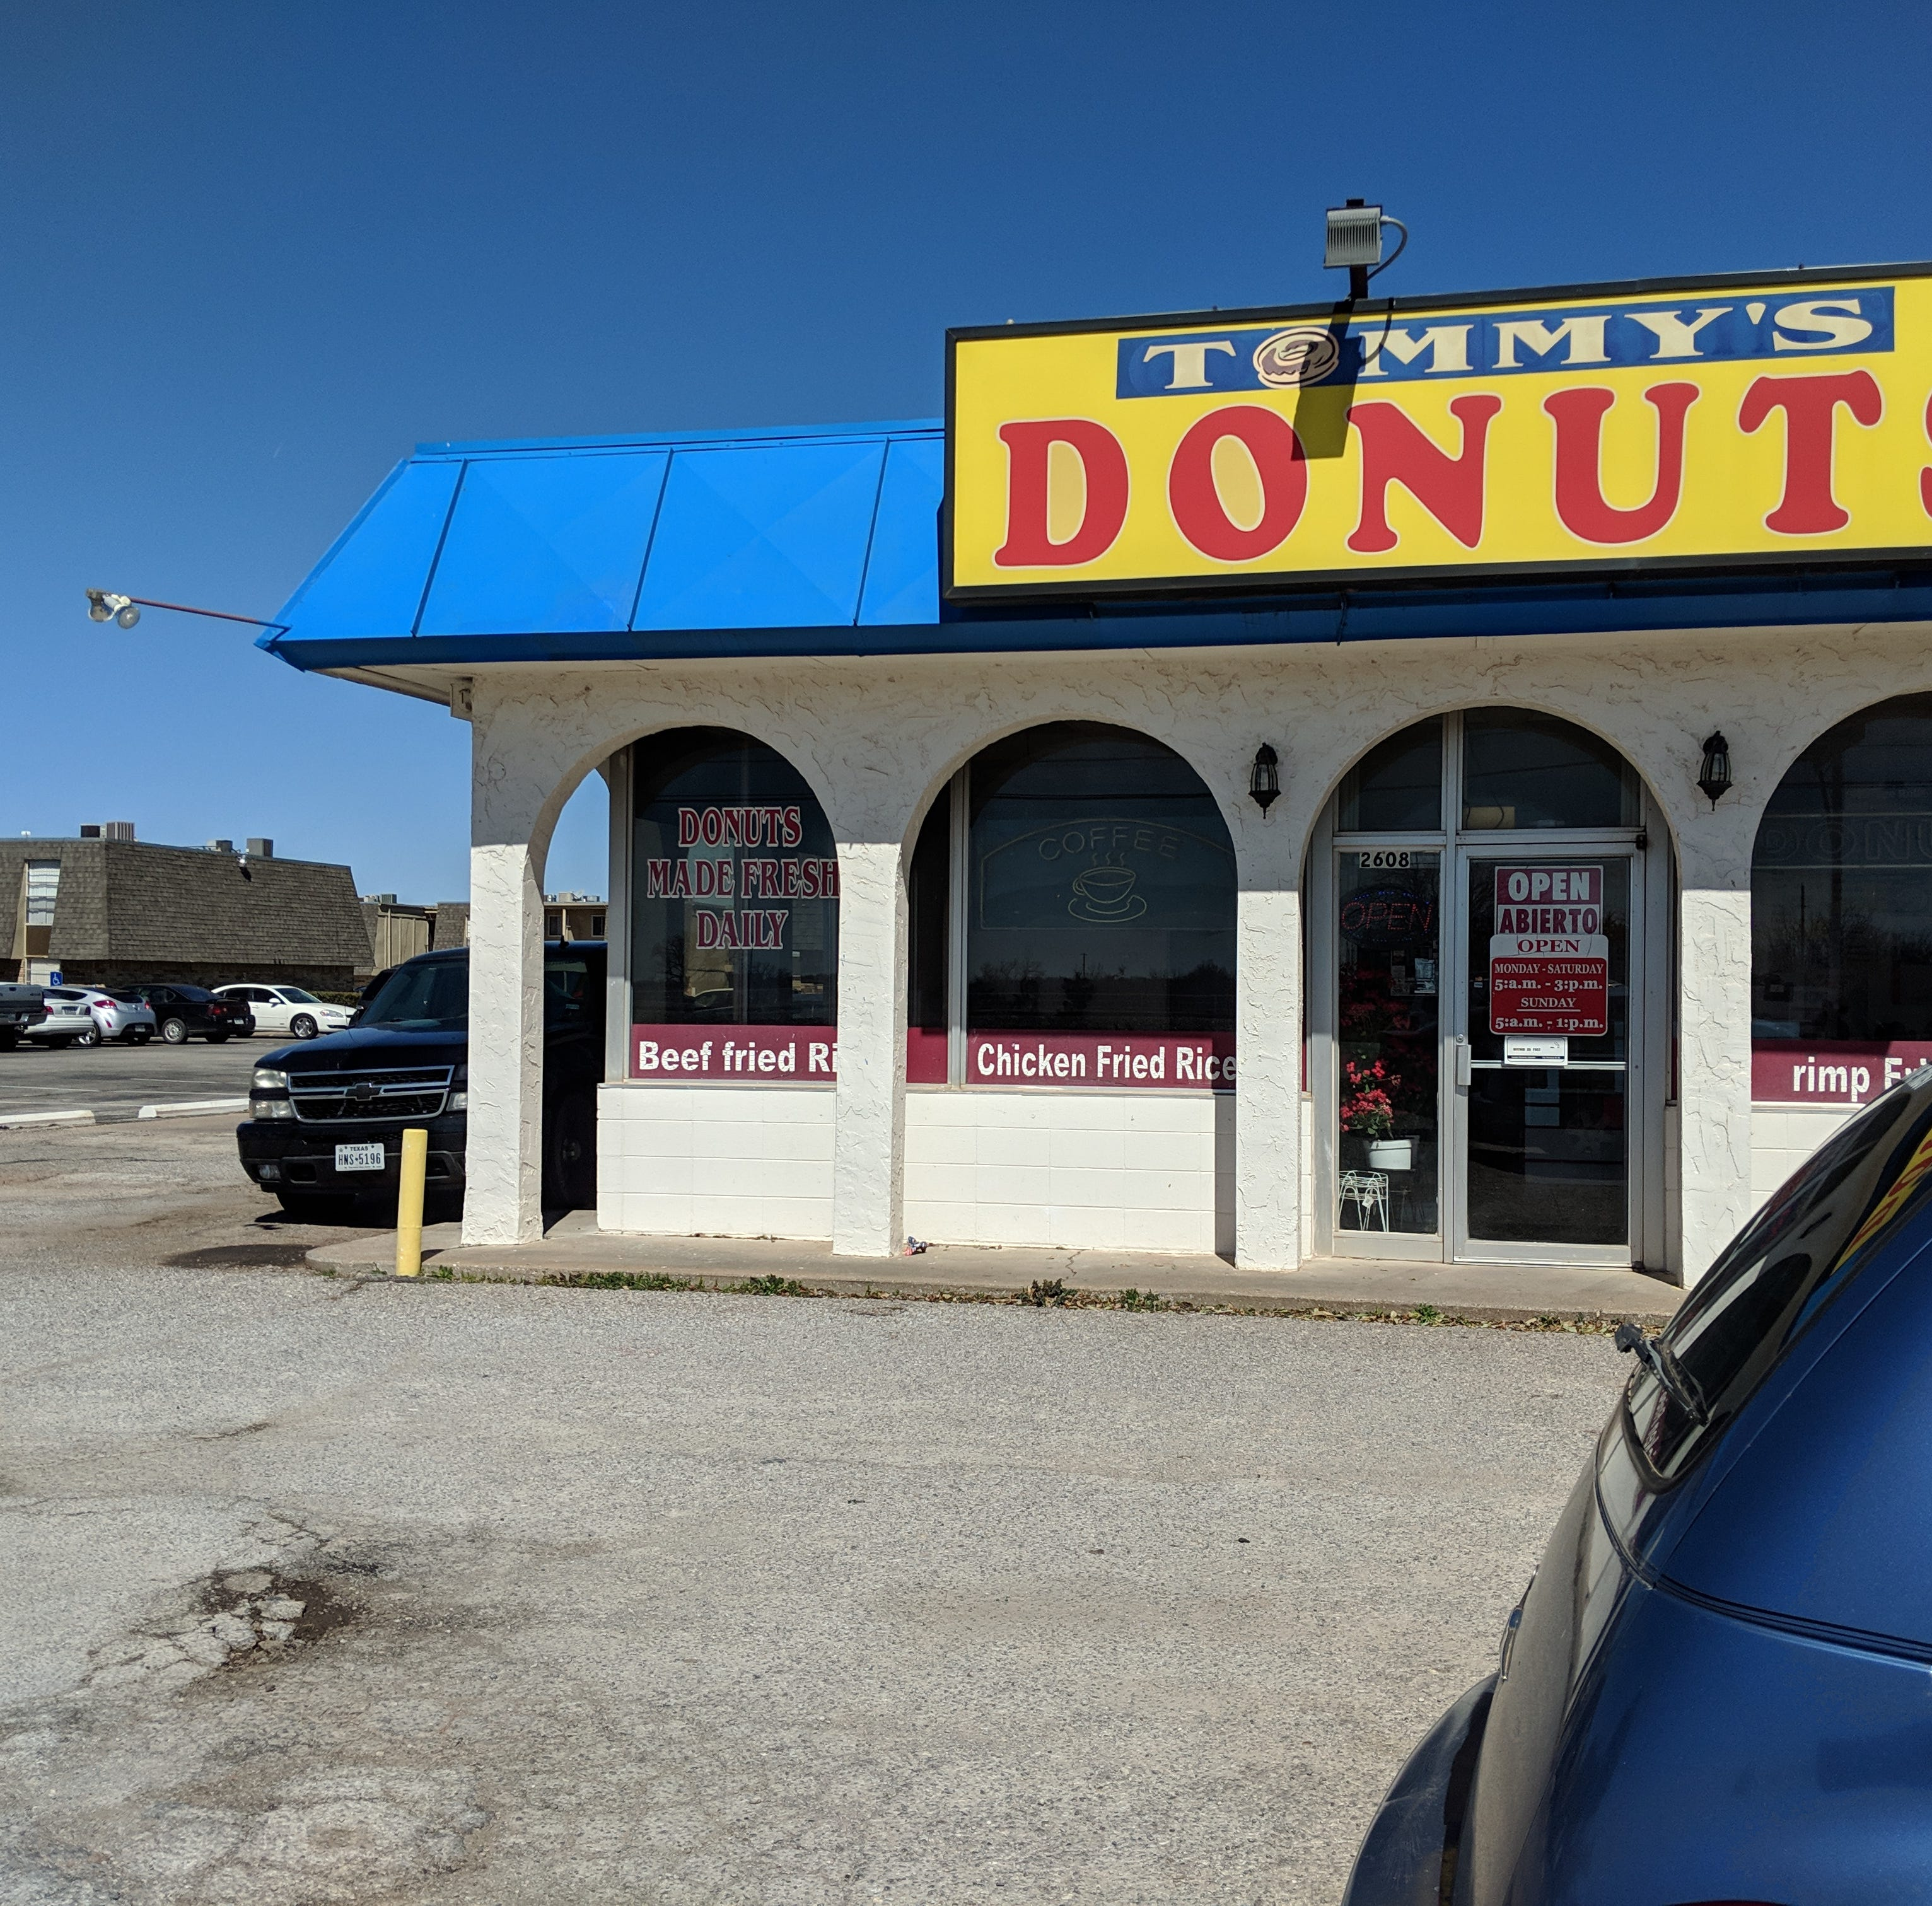 Tommy's Donuts serves up wonderful fried rice and donuts